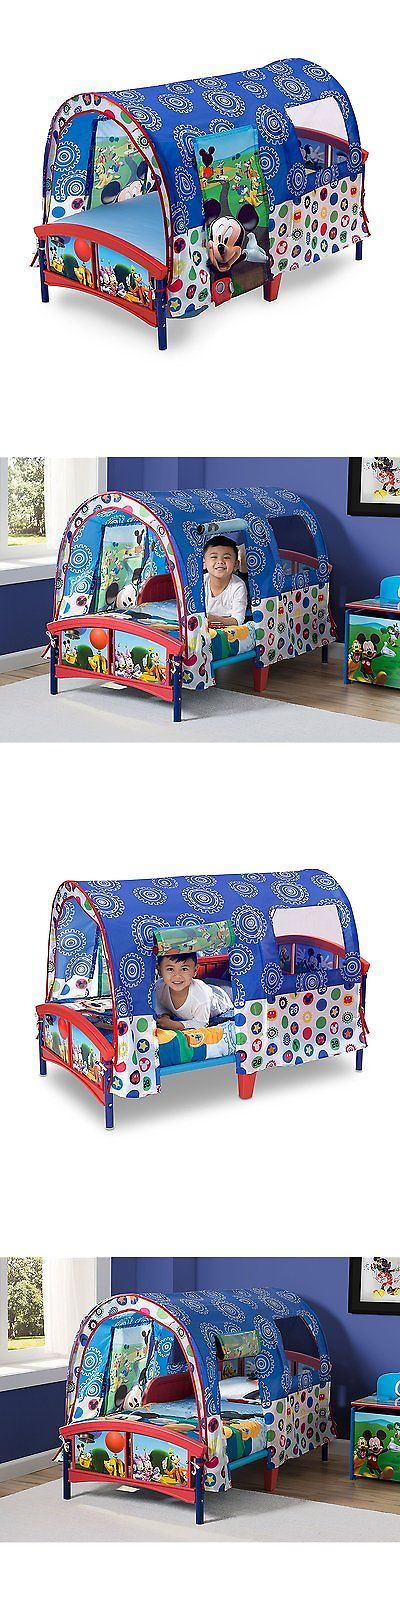 Dollhouse Size 19179: Delta Children Toddler Tent Bed, Disney Mickey Mouse -> BUY IT NOW ONLY: $76.93 on eBay!